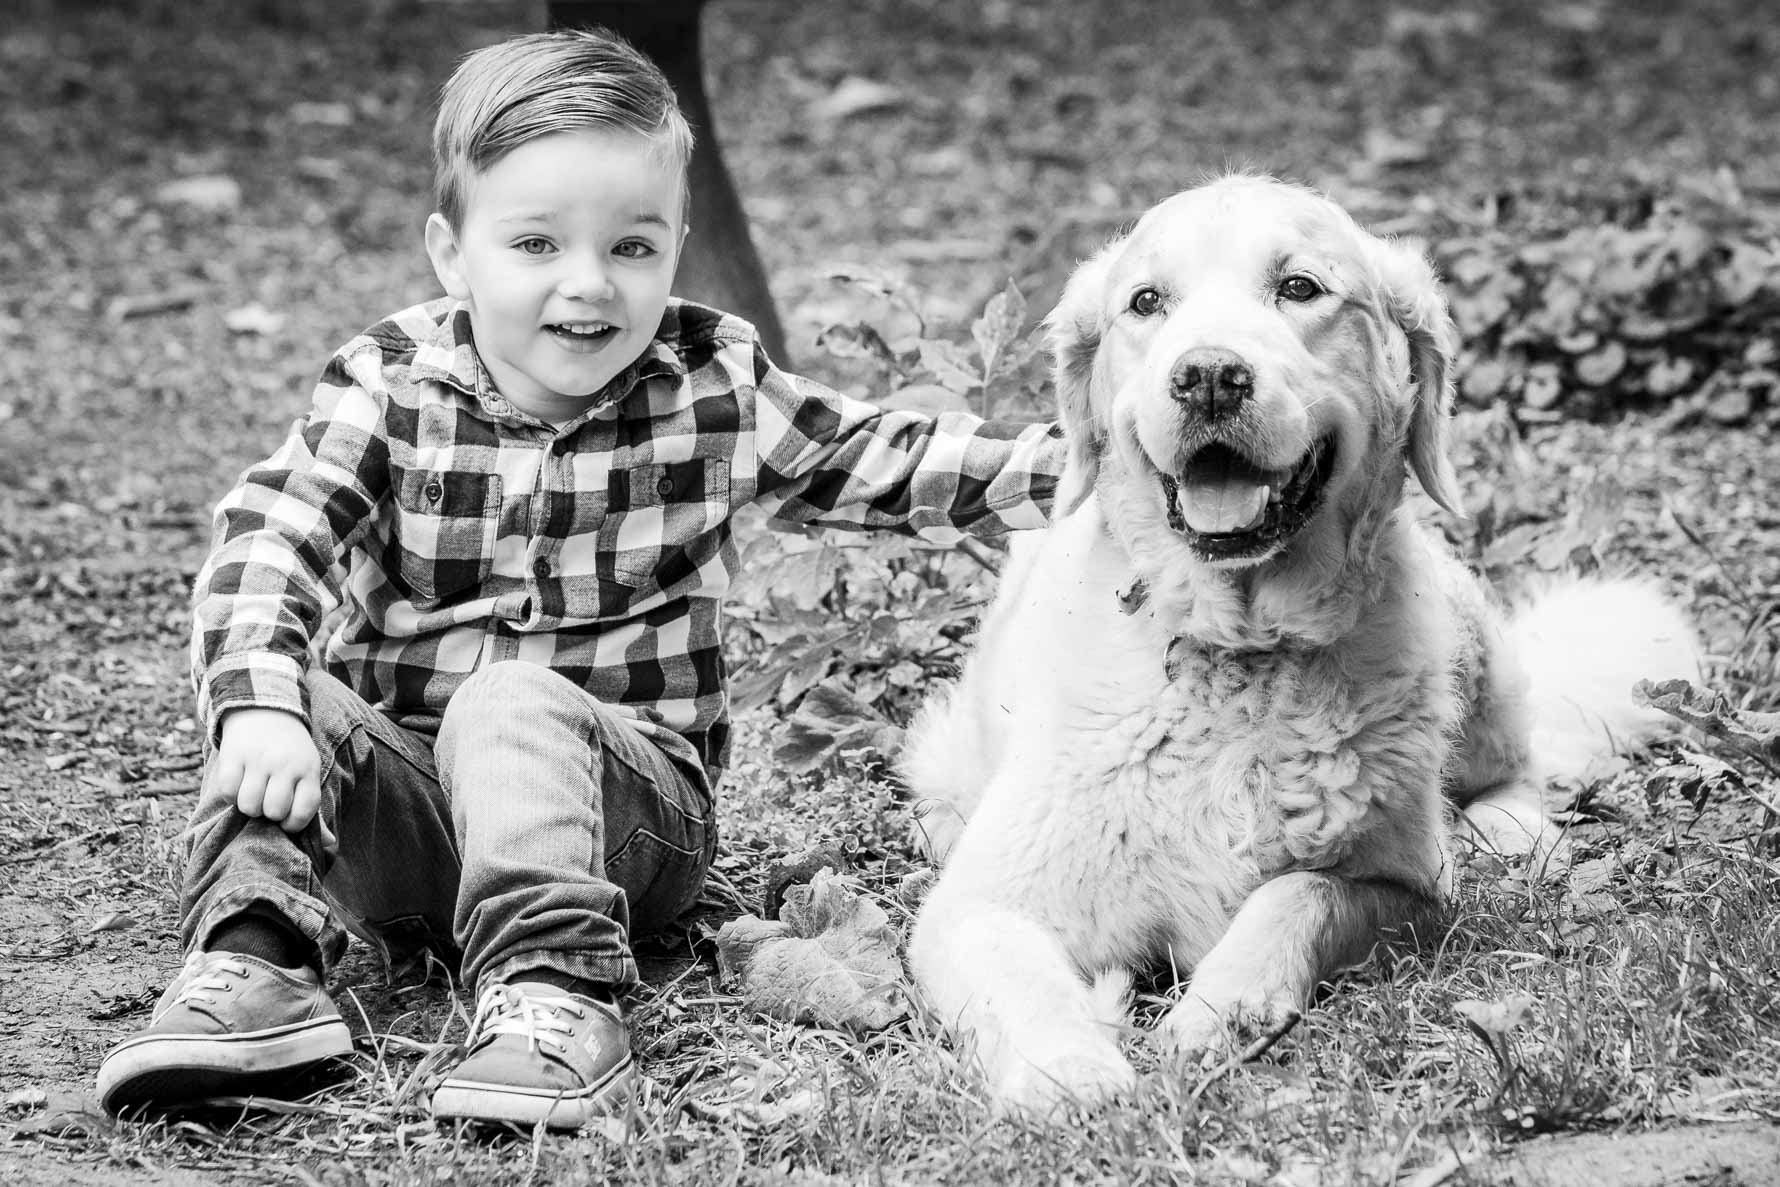 a boy sat next to a dog photographed n clack and white